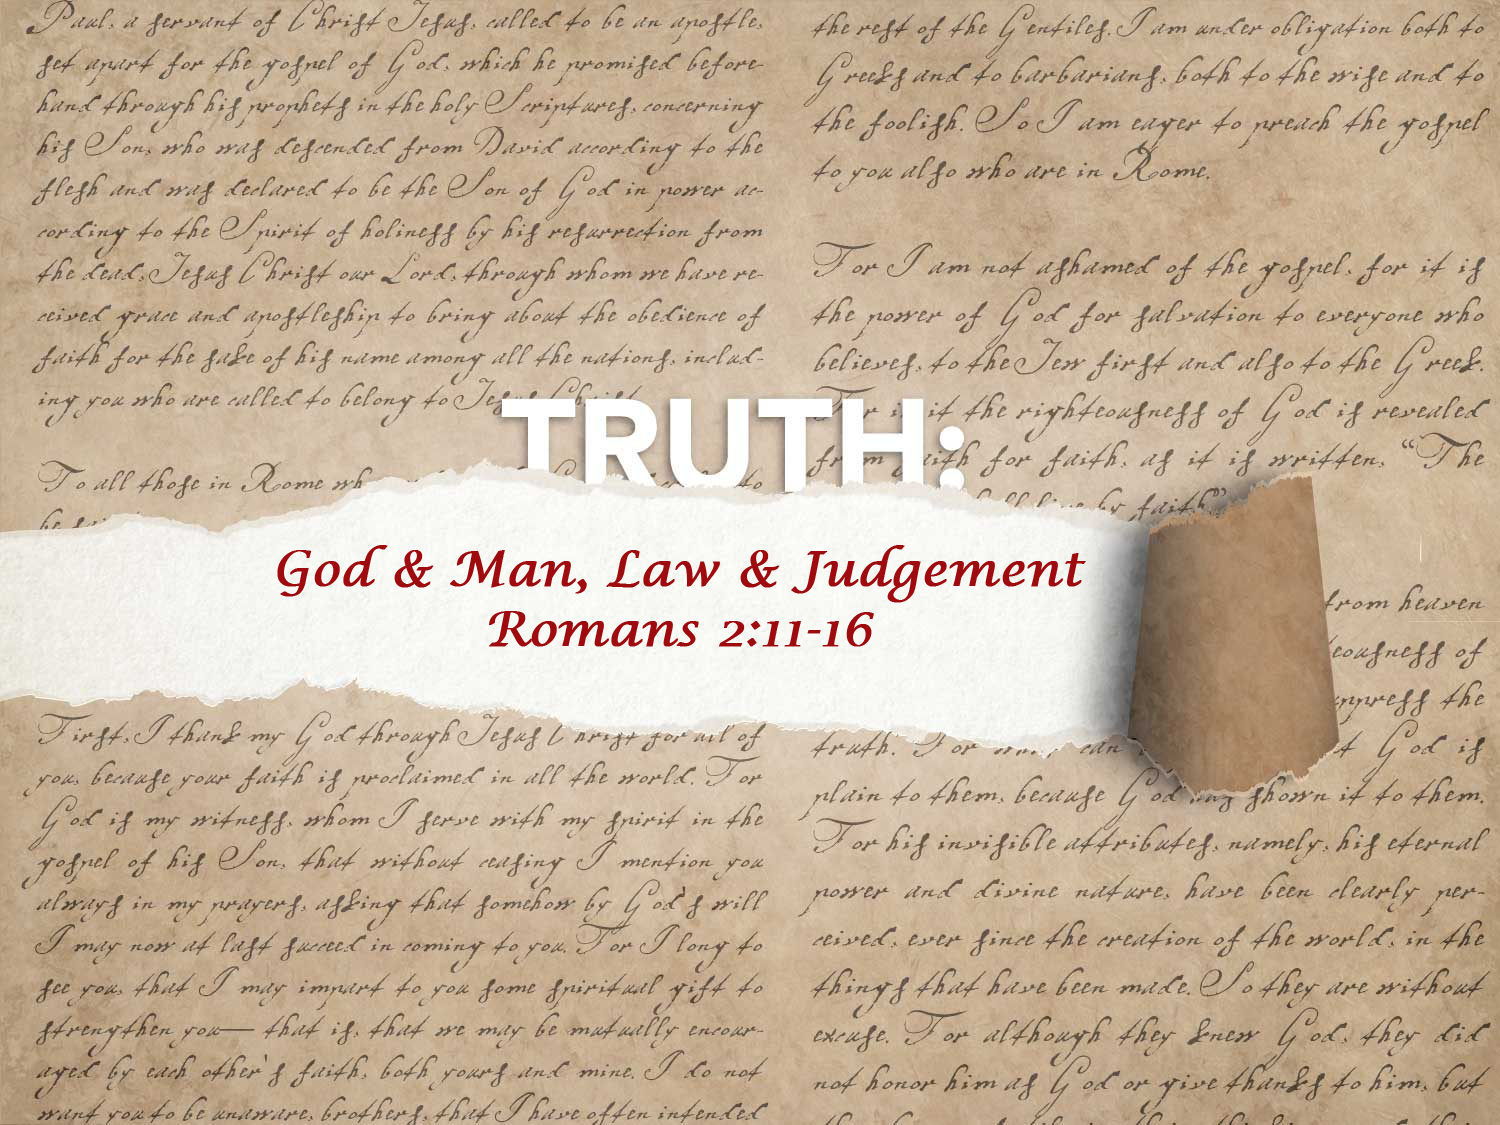 Romans 2:11-16 God and Man, Law and Judgement